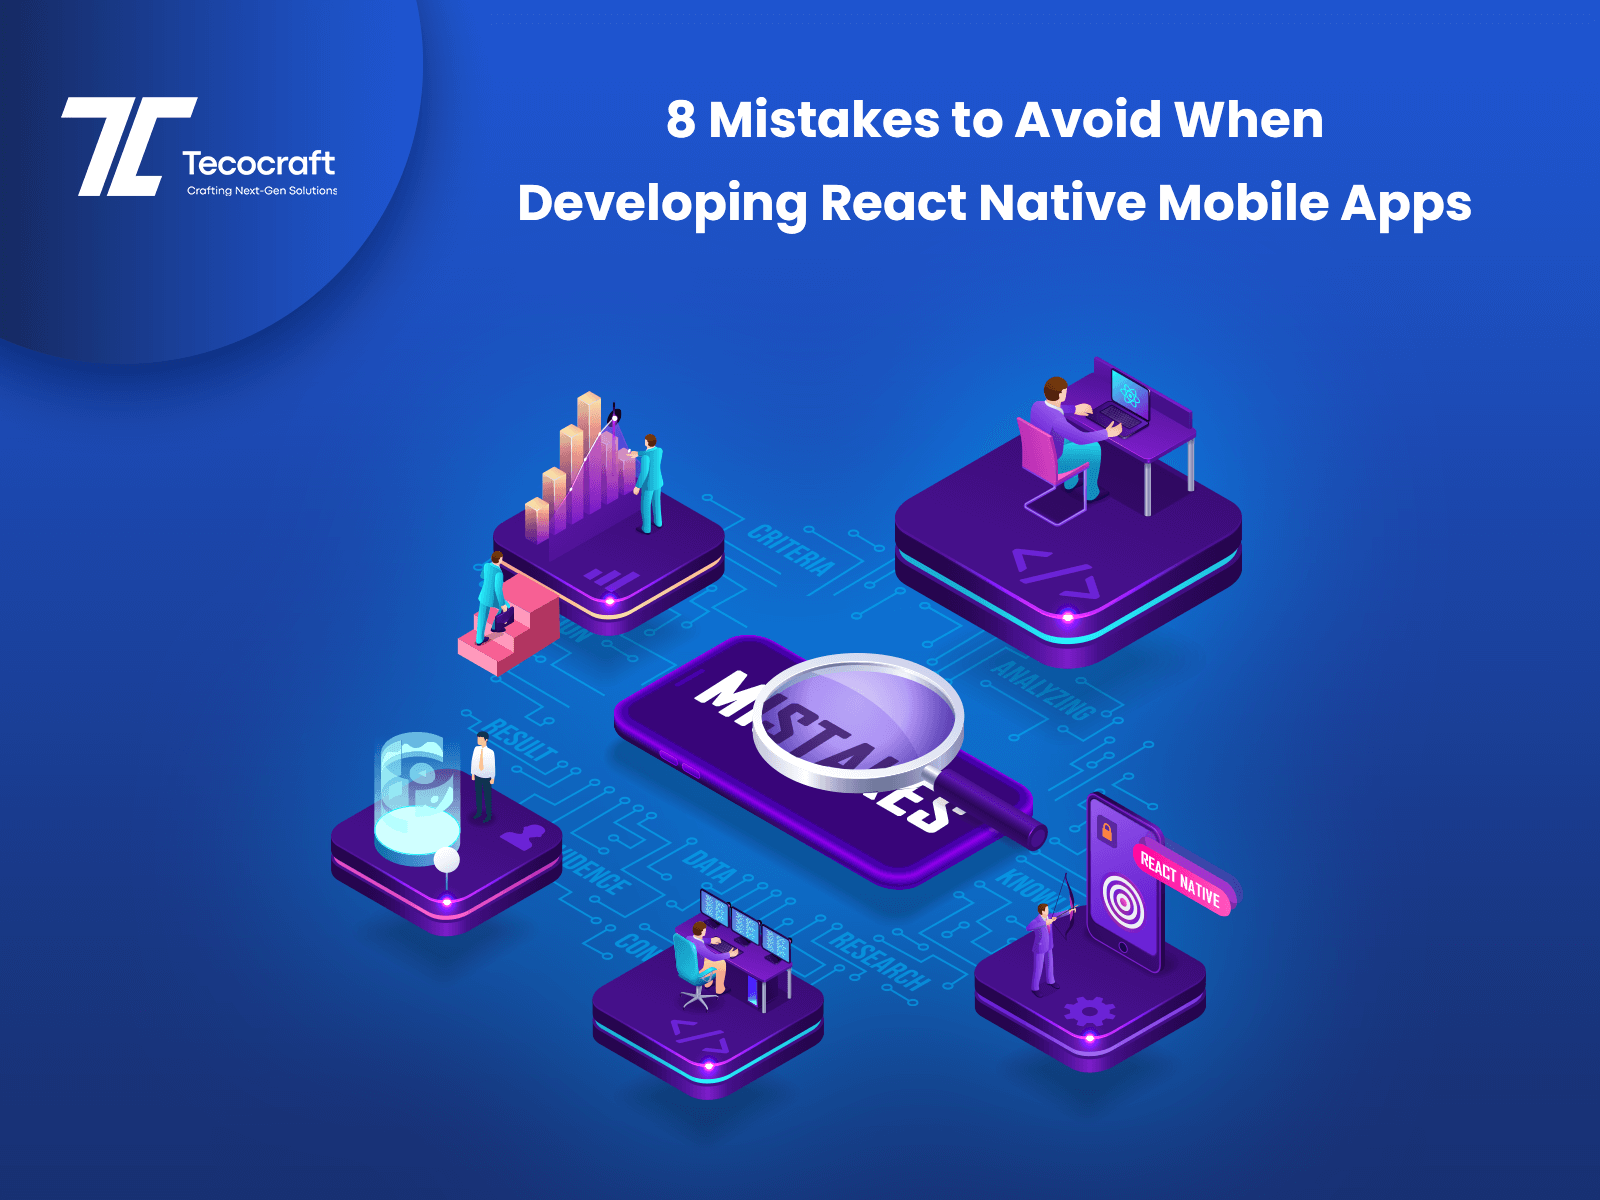 Mistakes to Avoid When Developing React Native Mobile Apps